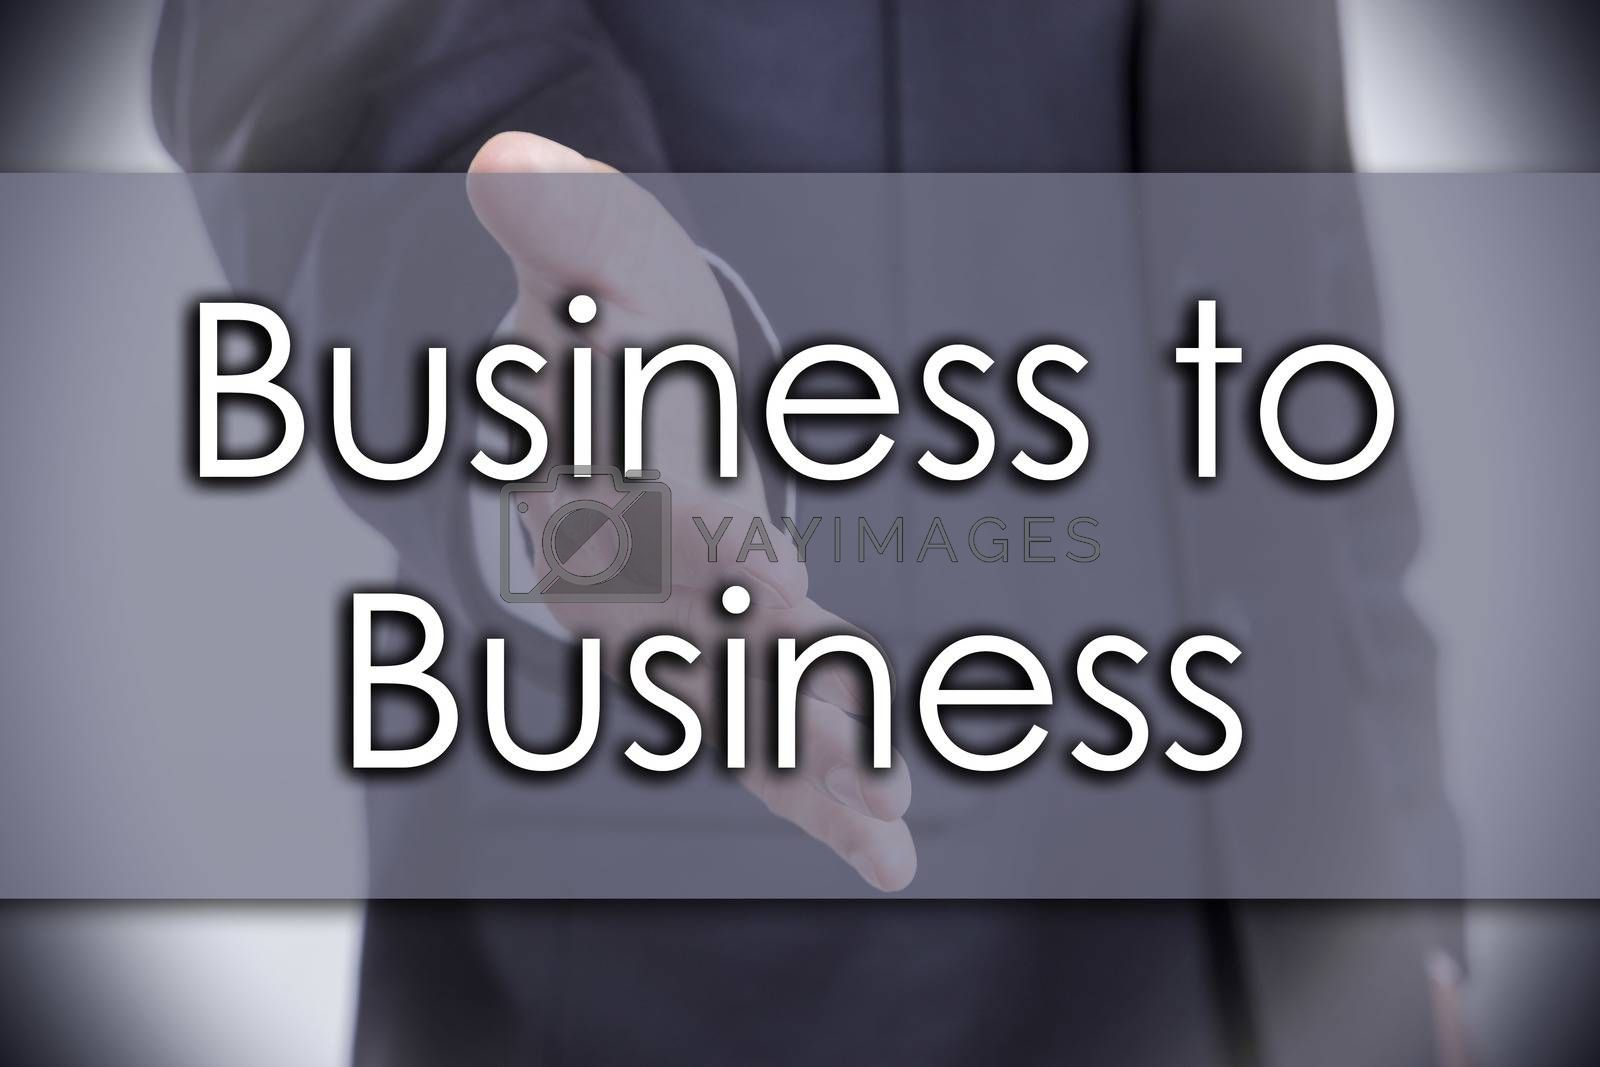 Business to Business - business concept with text by zsirosistvan